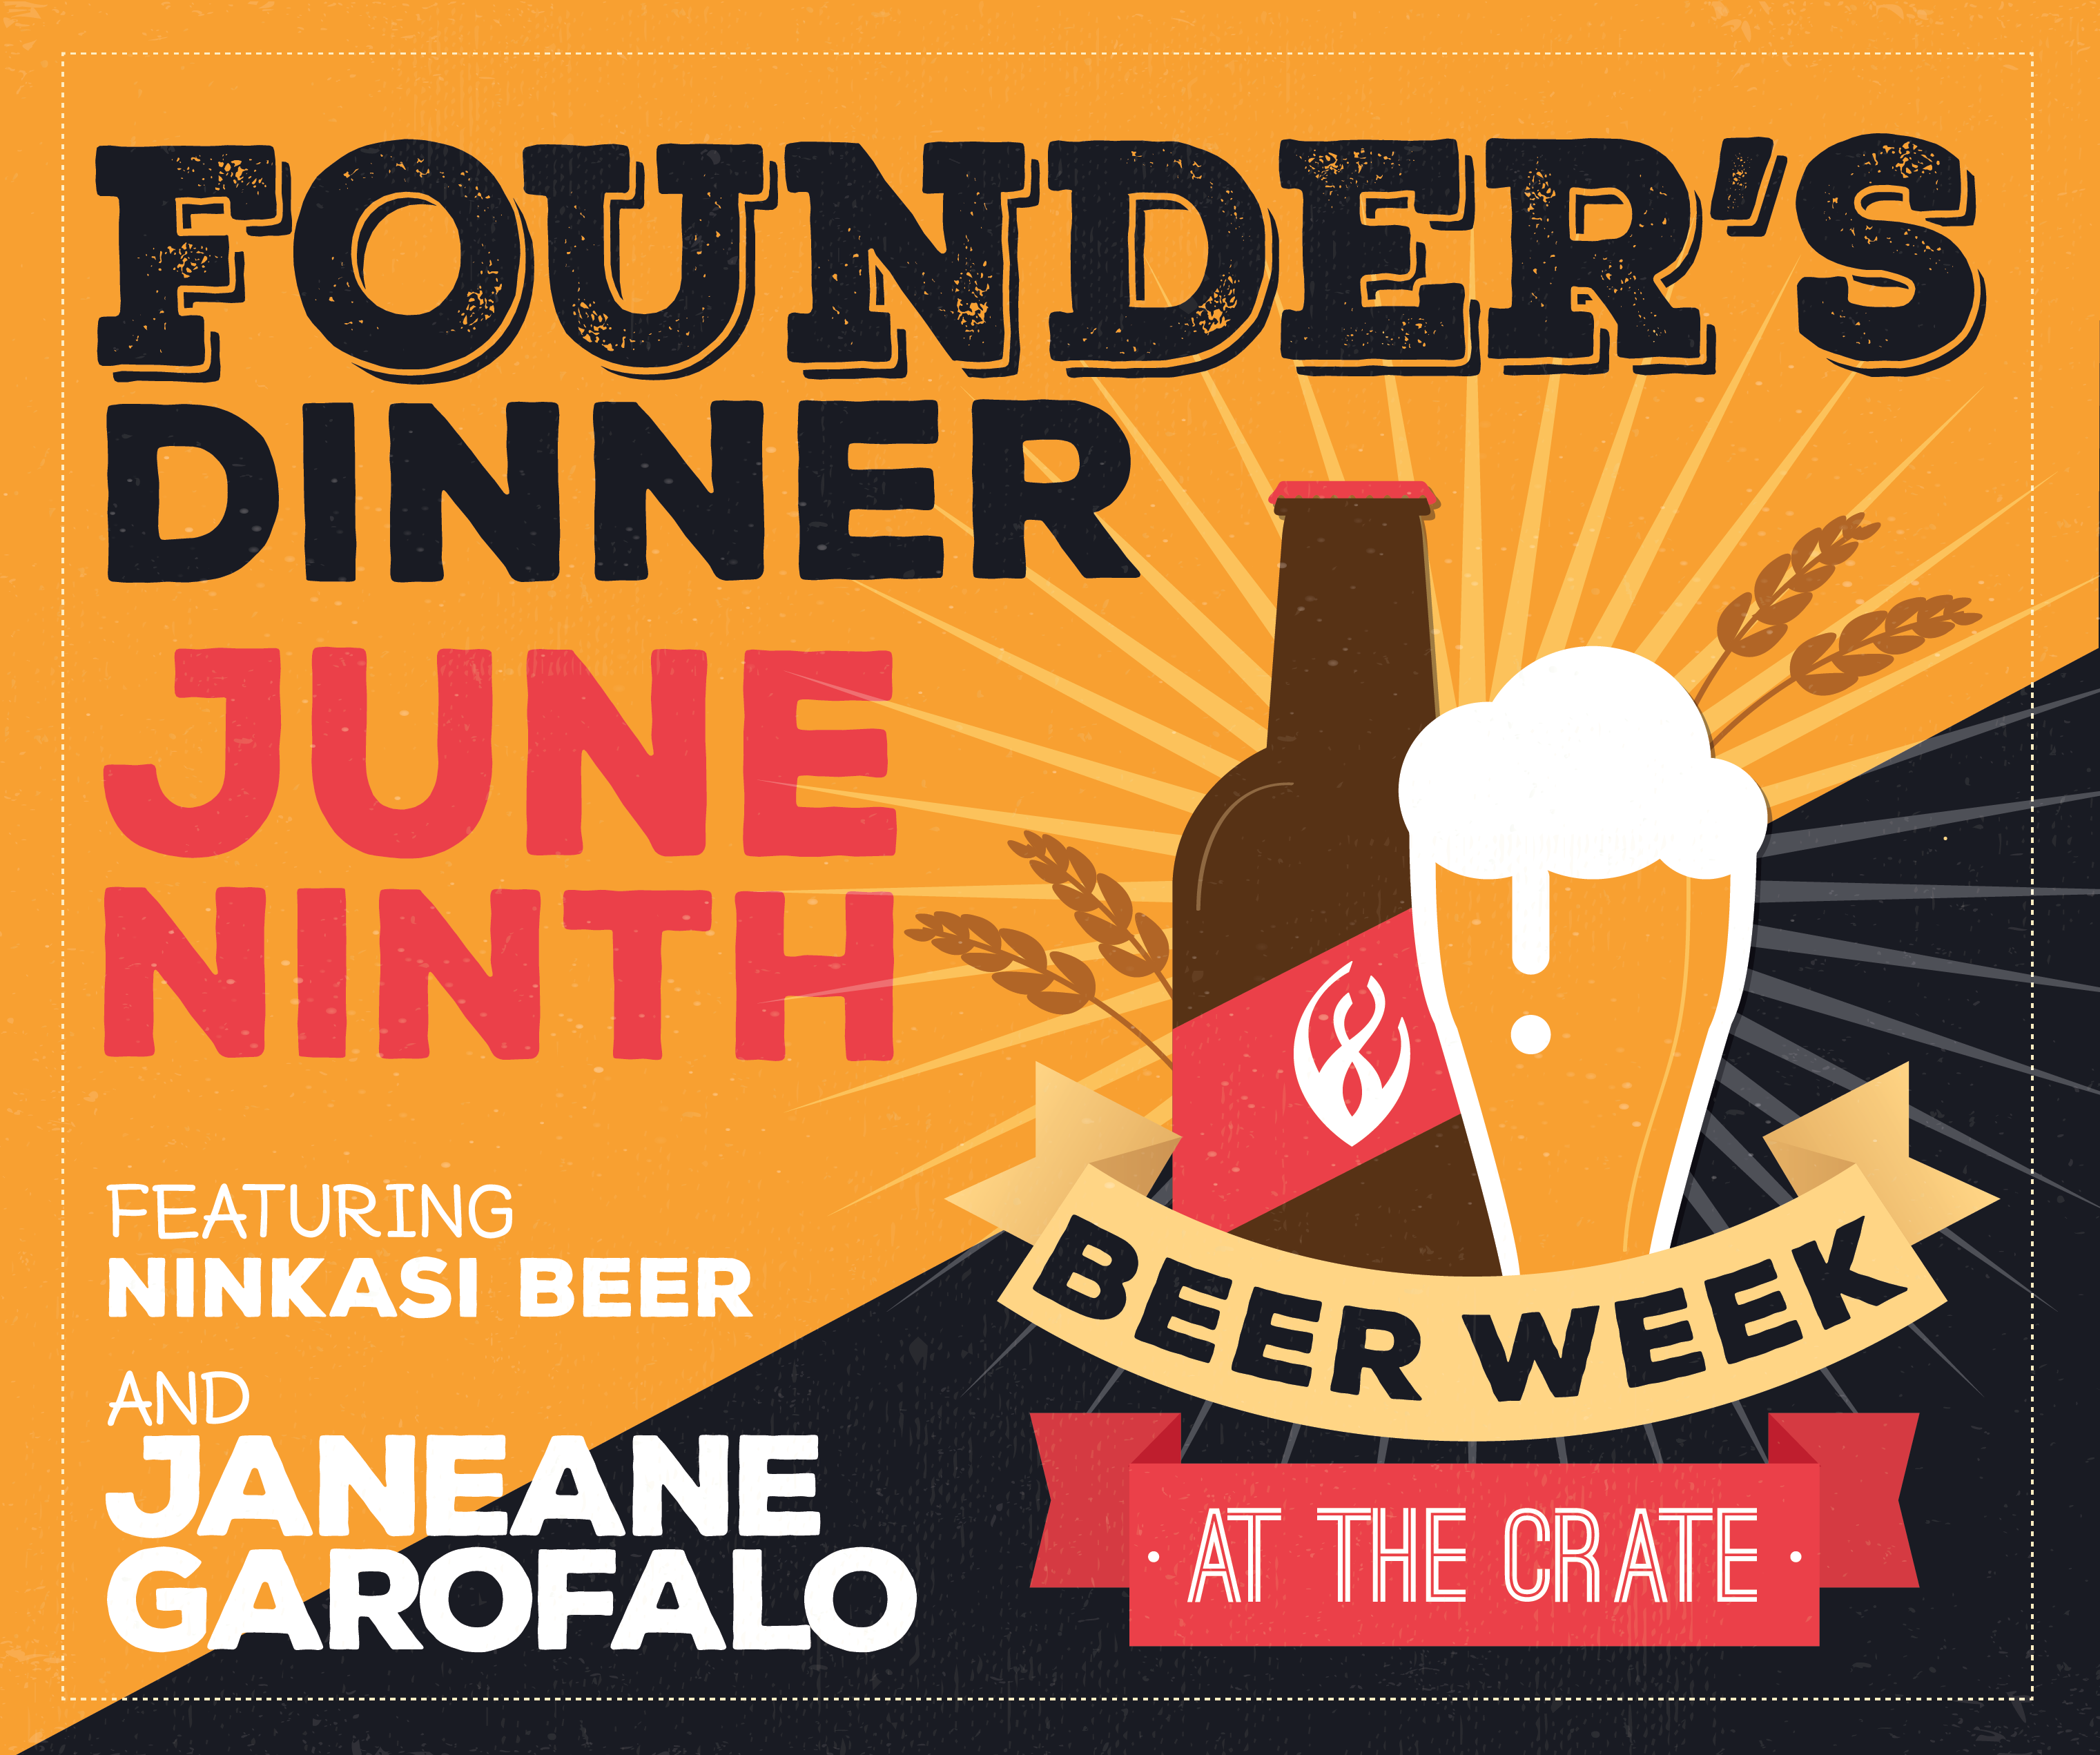 Beer Week Brew-A-Palloza VIP Founder's Dinner